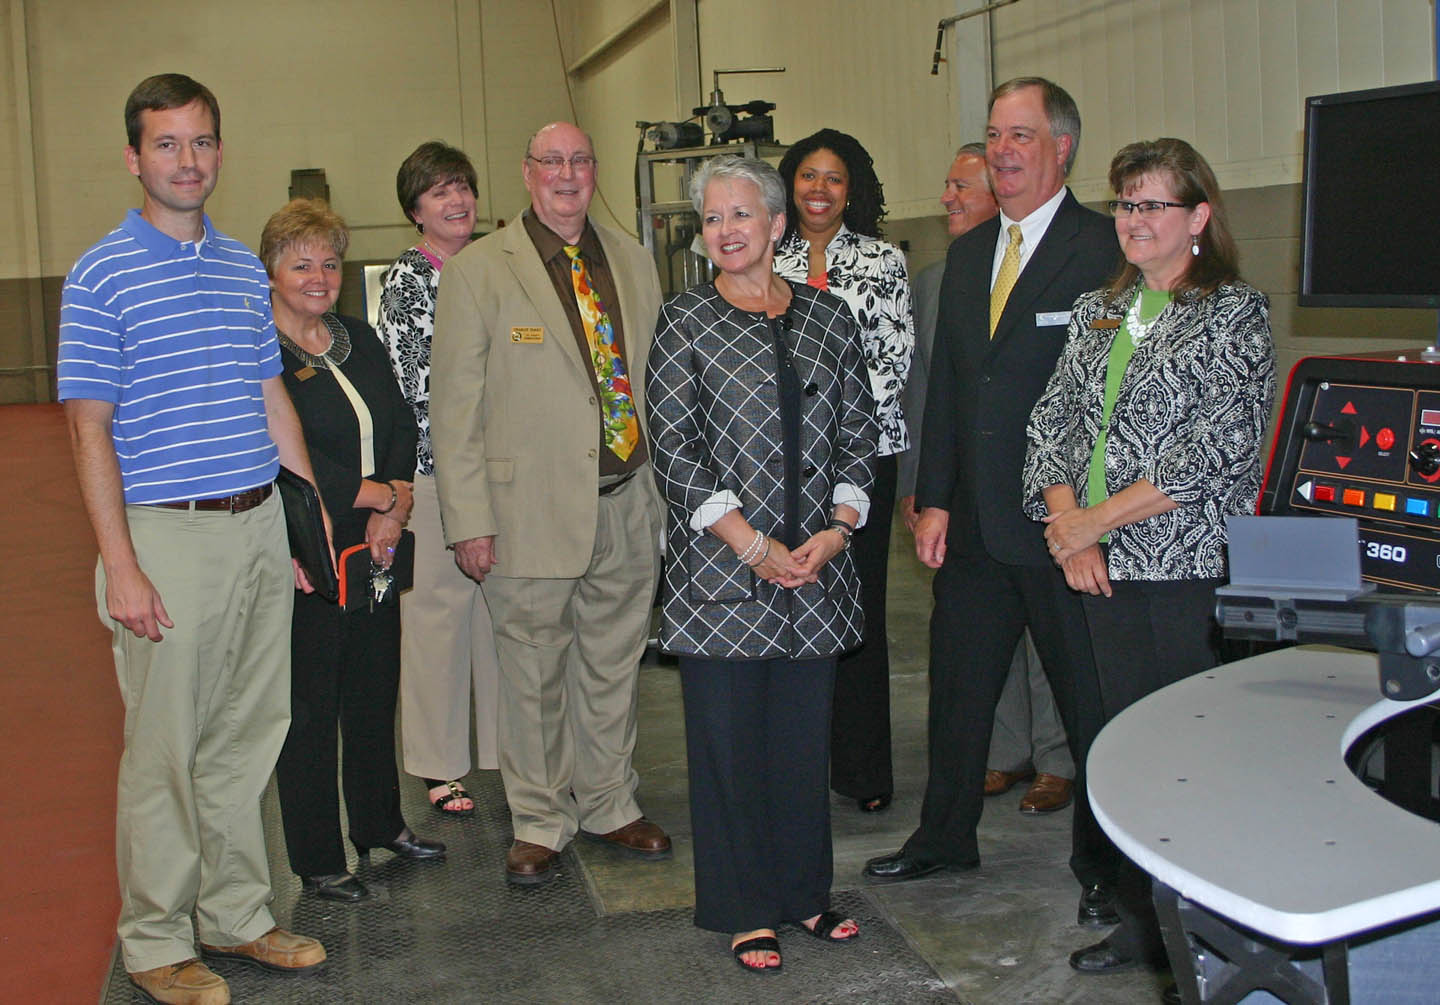 NC Secretary of Commerce impressed by Innovation Center